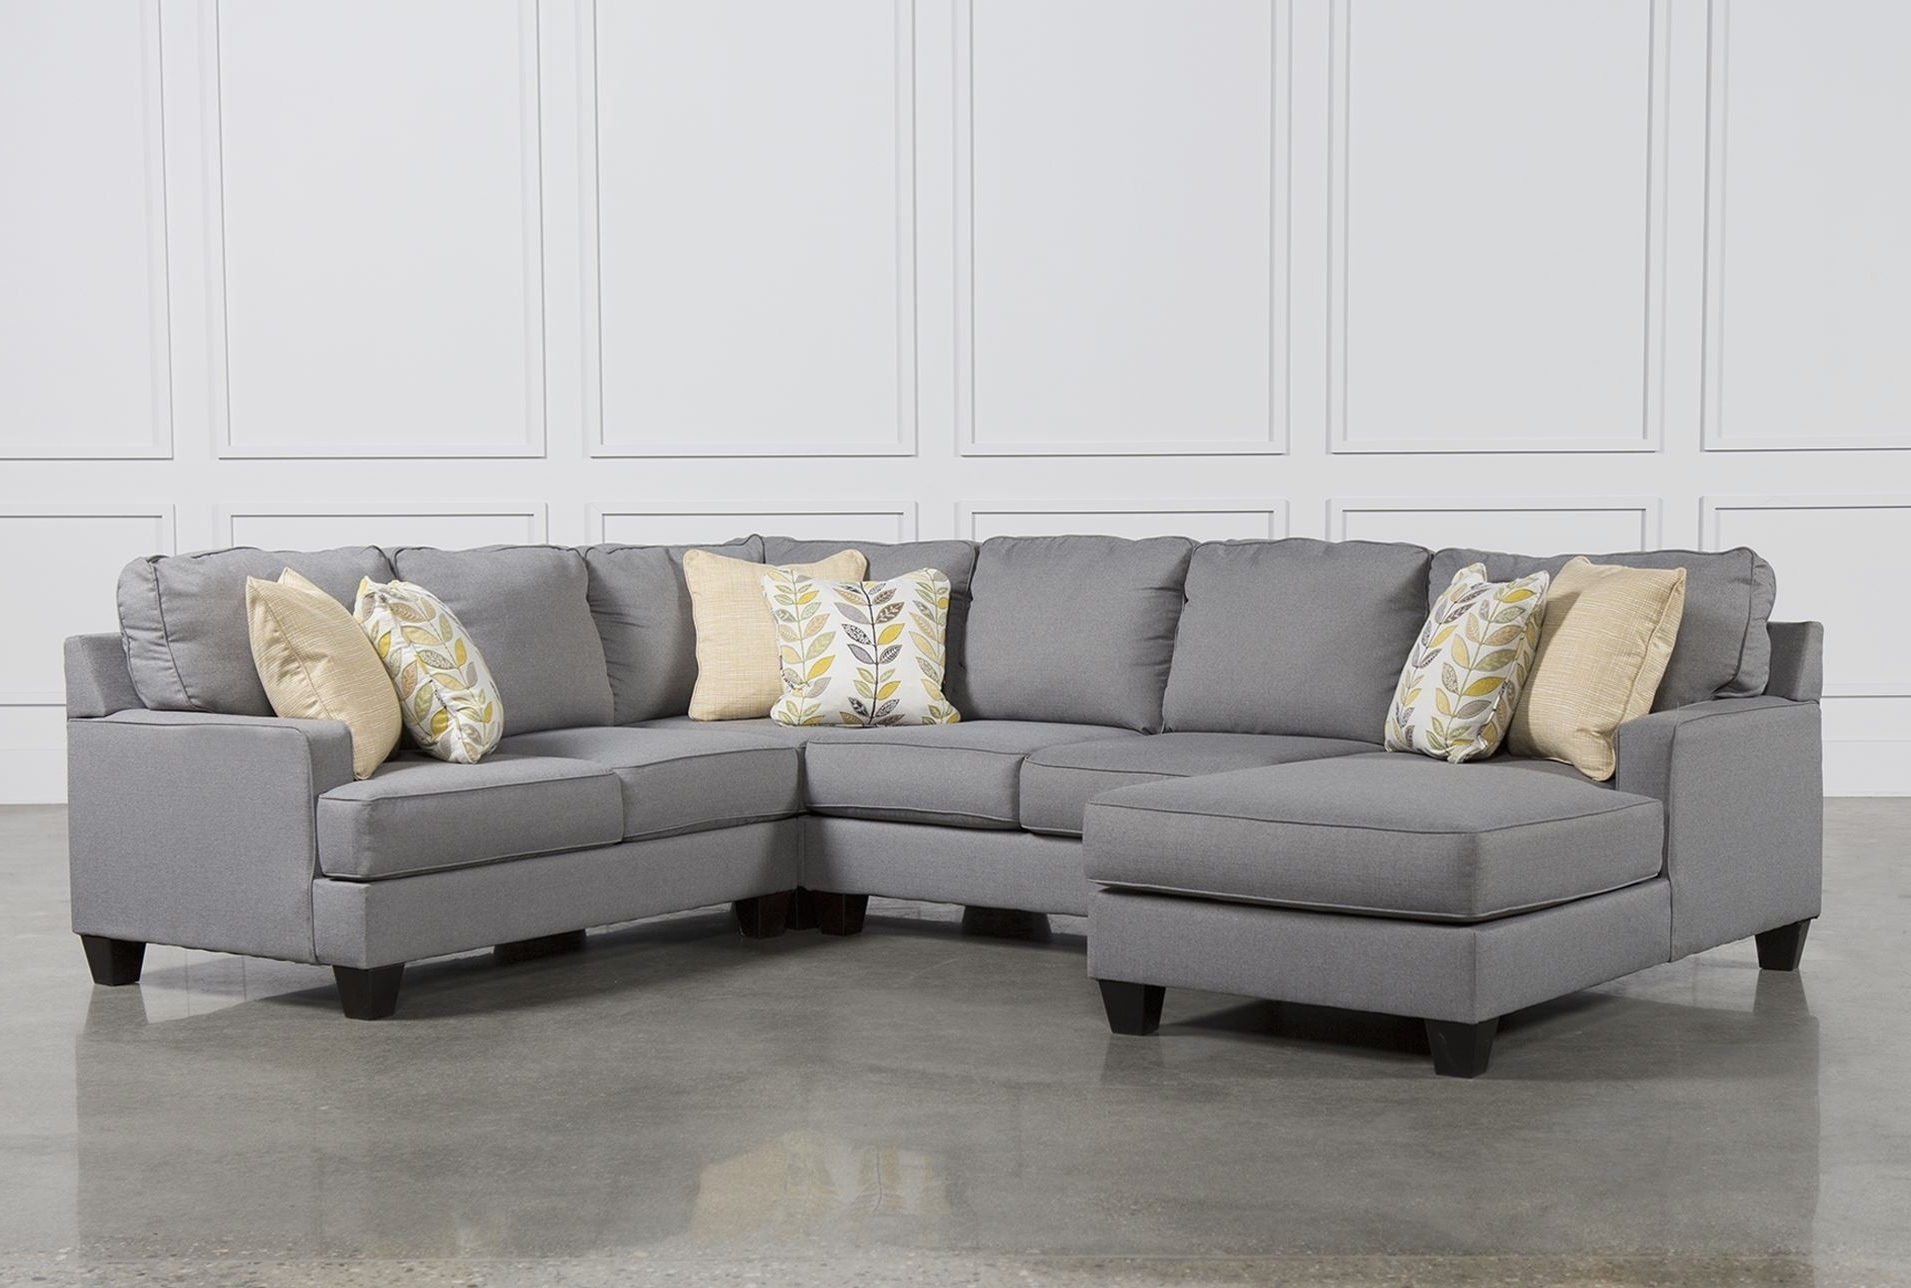 4 Piece Sectional W Armless Sofa Left Chaisebenchcraft In With Throughout Most Up To Date 4 Piece Sectional Sofas With Chaise (View 3 of 15)